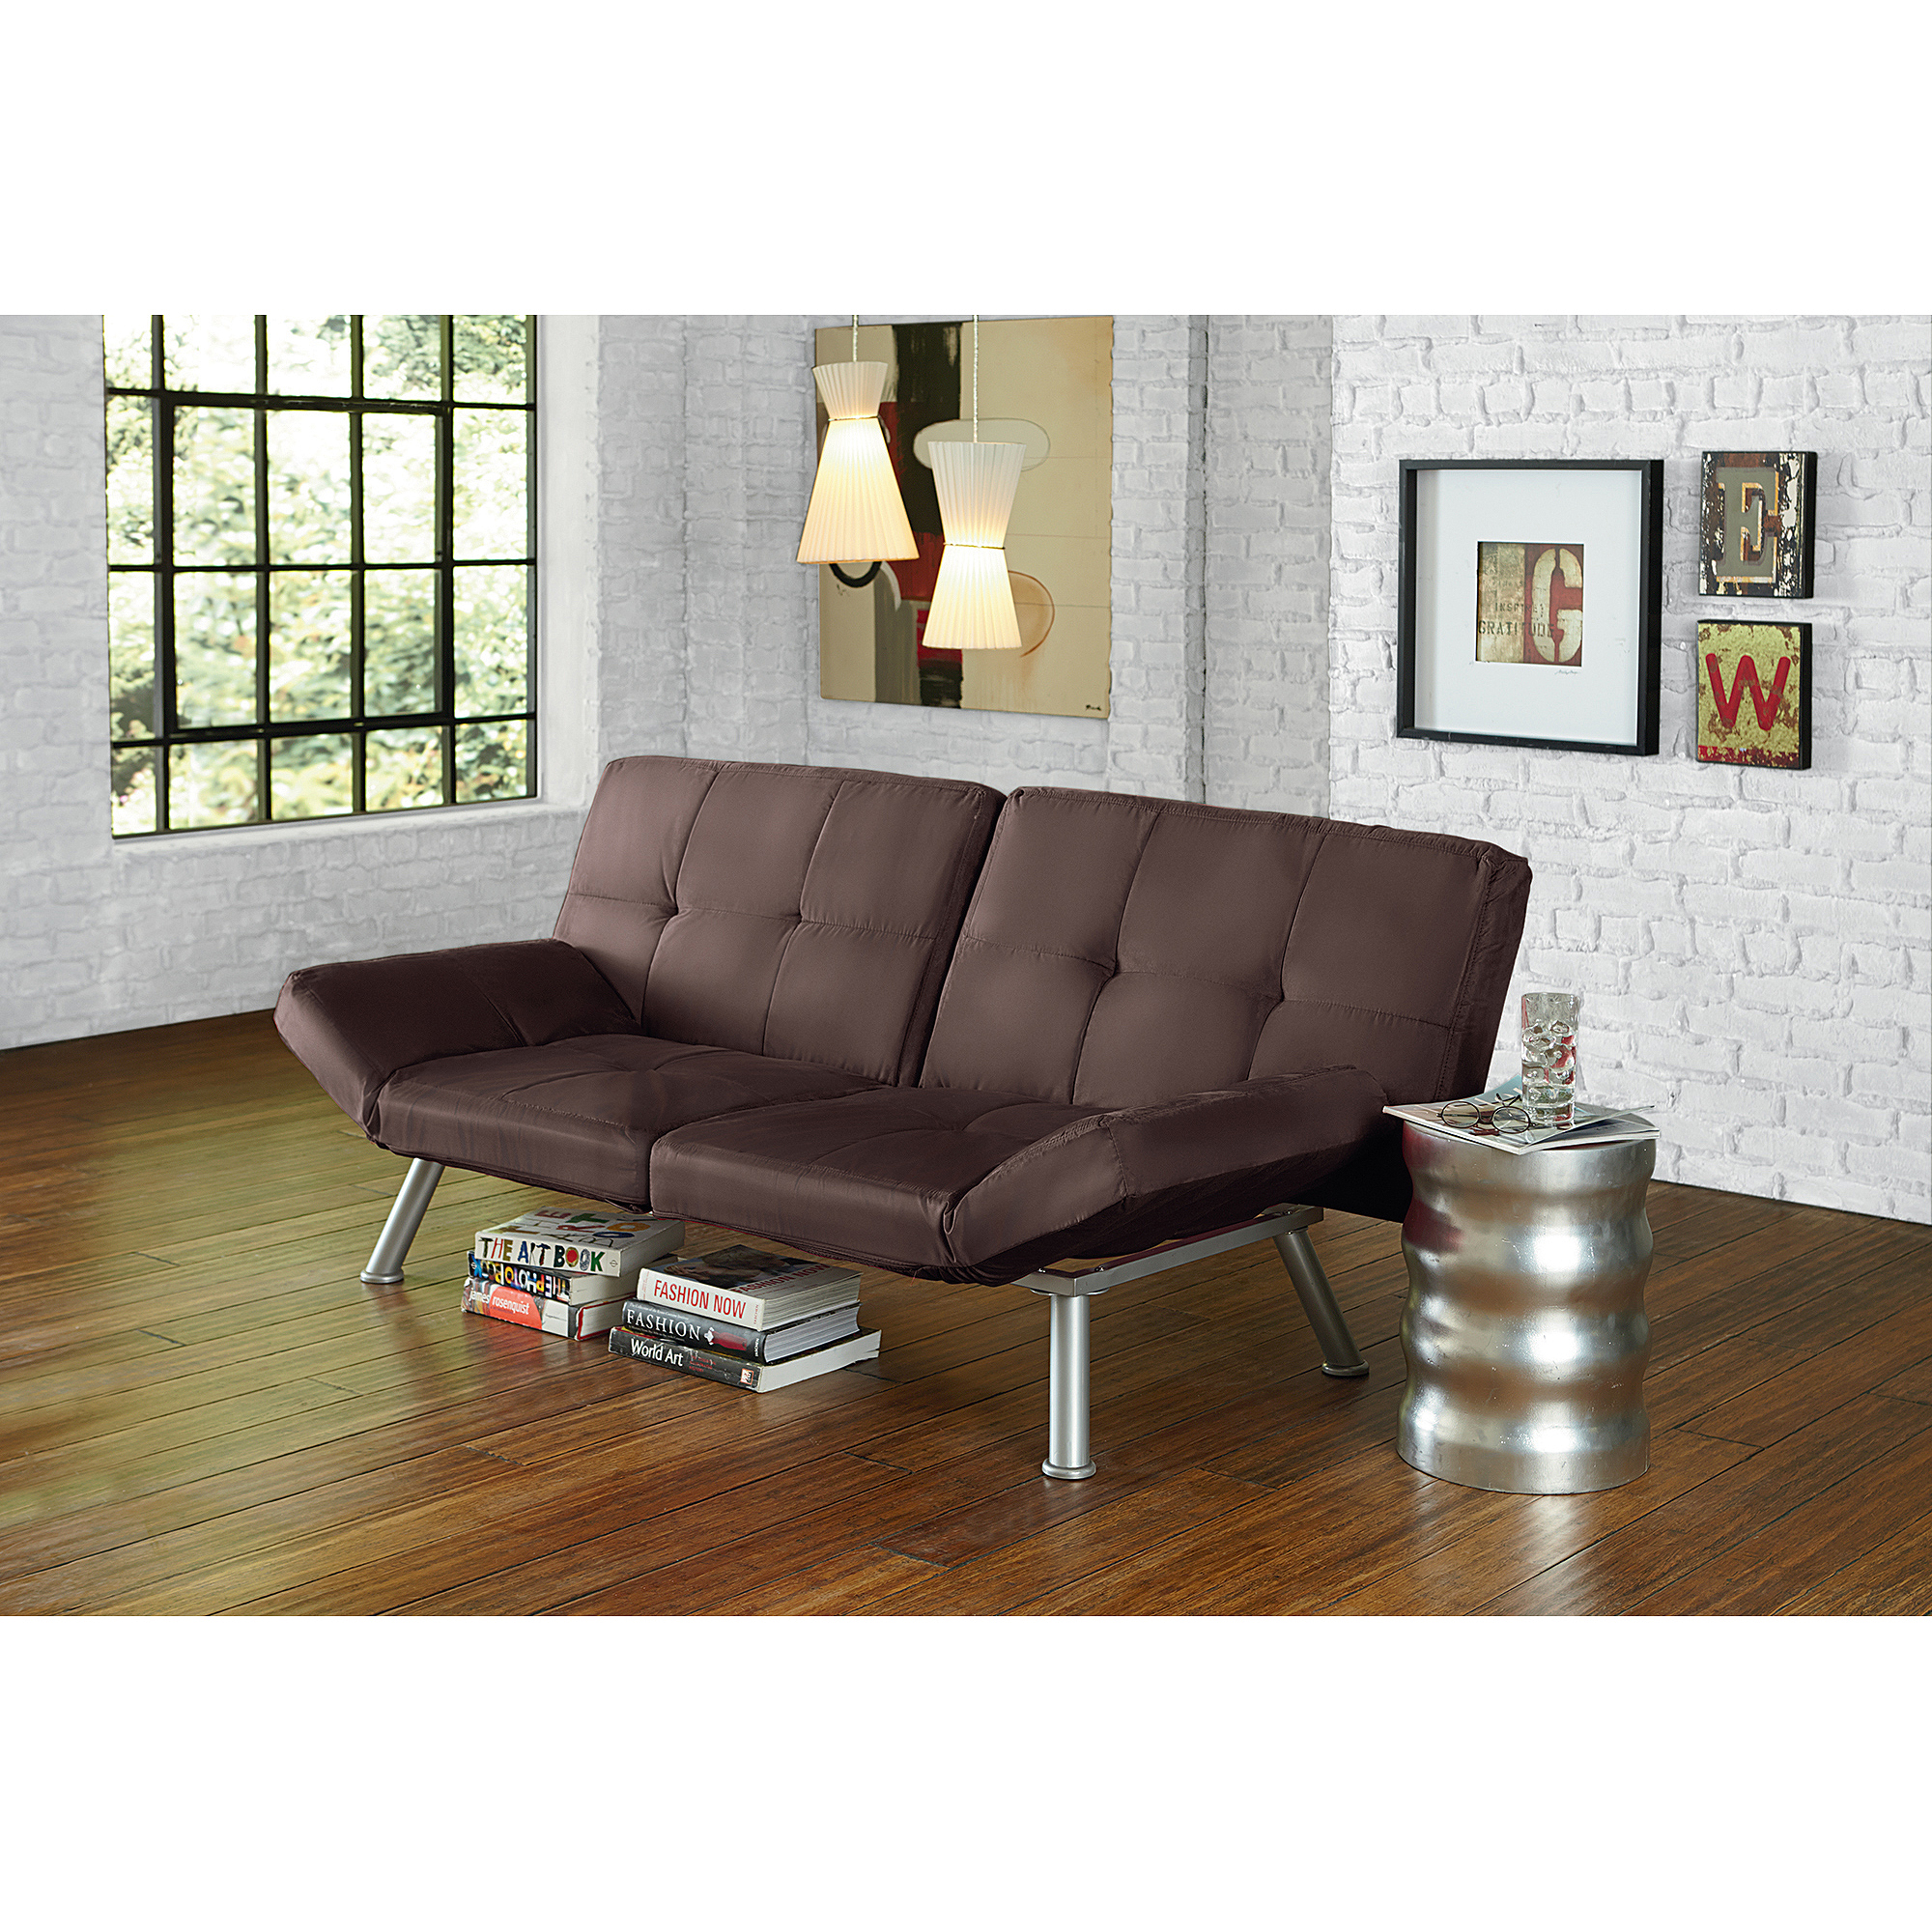 Mainstays Contempo Futon Sofa Bed, Multiple Colors